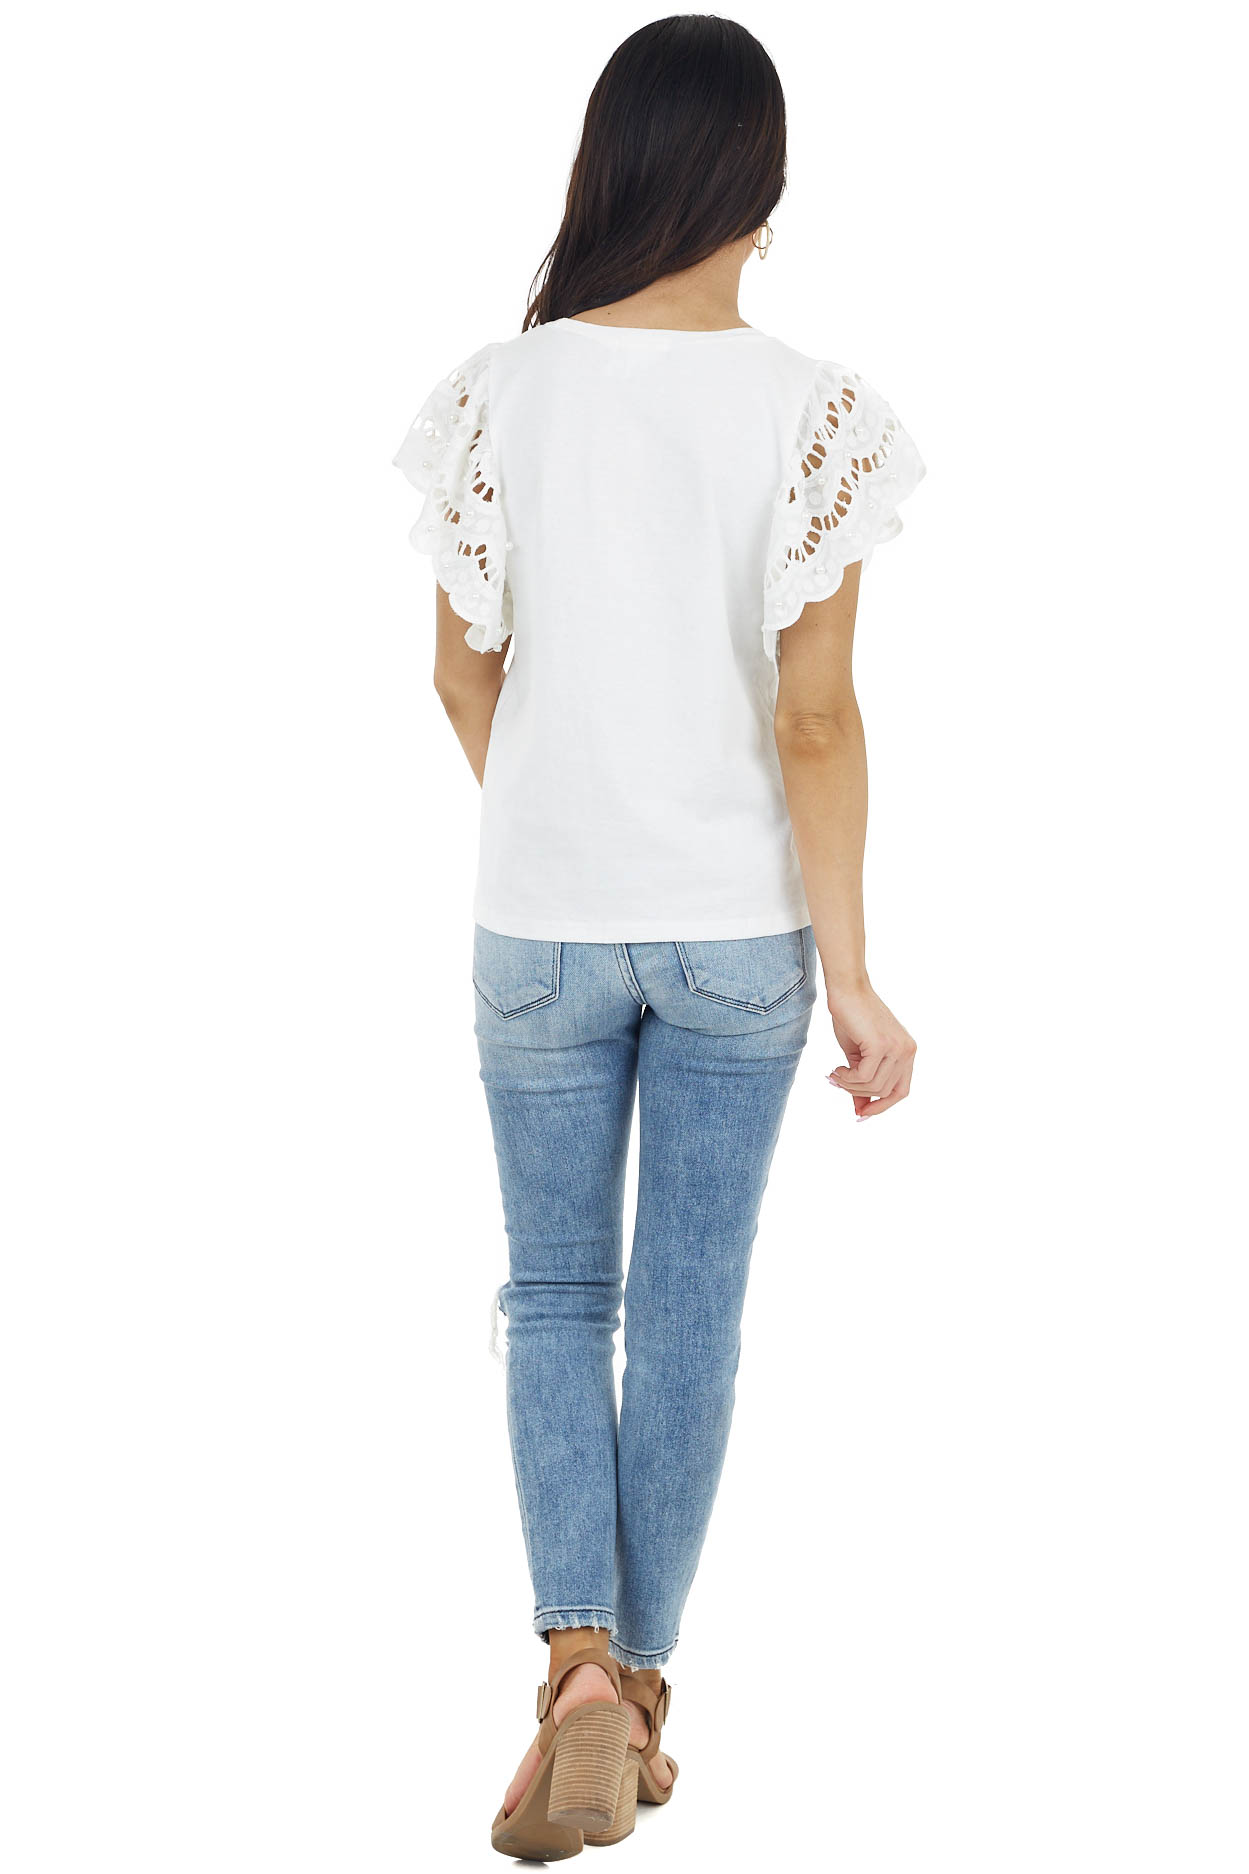 Off White Top with Crochet Short Sleeves and Pearl Detail